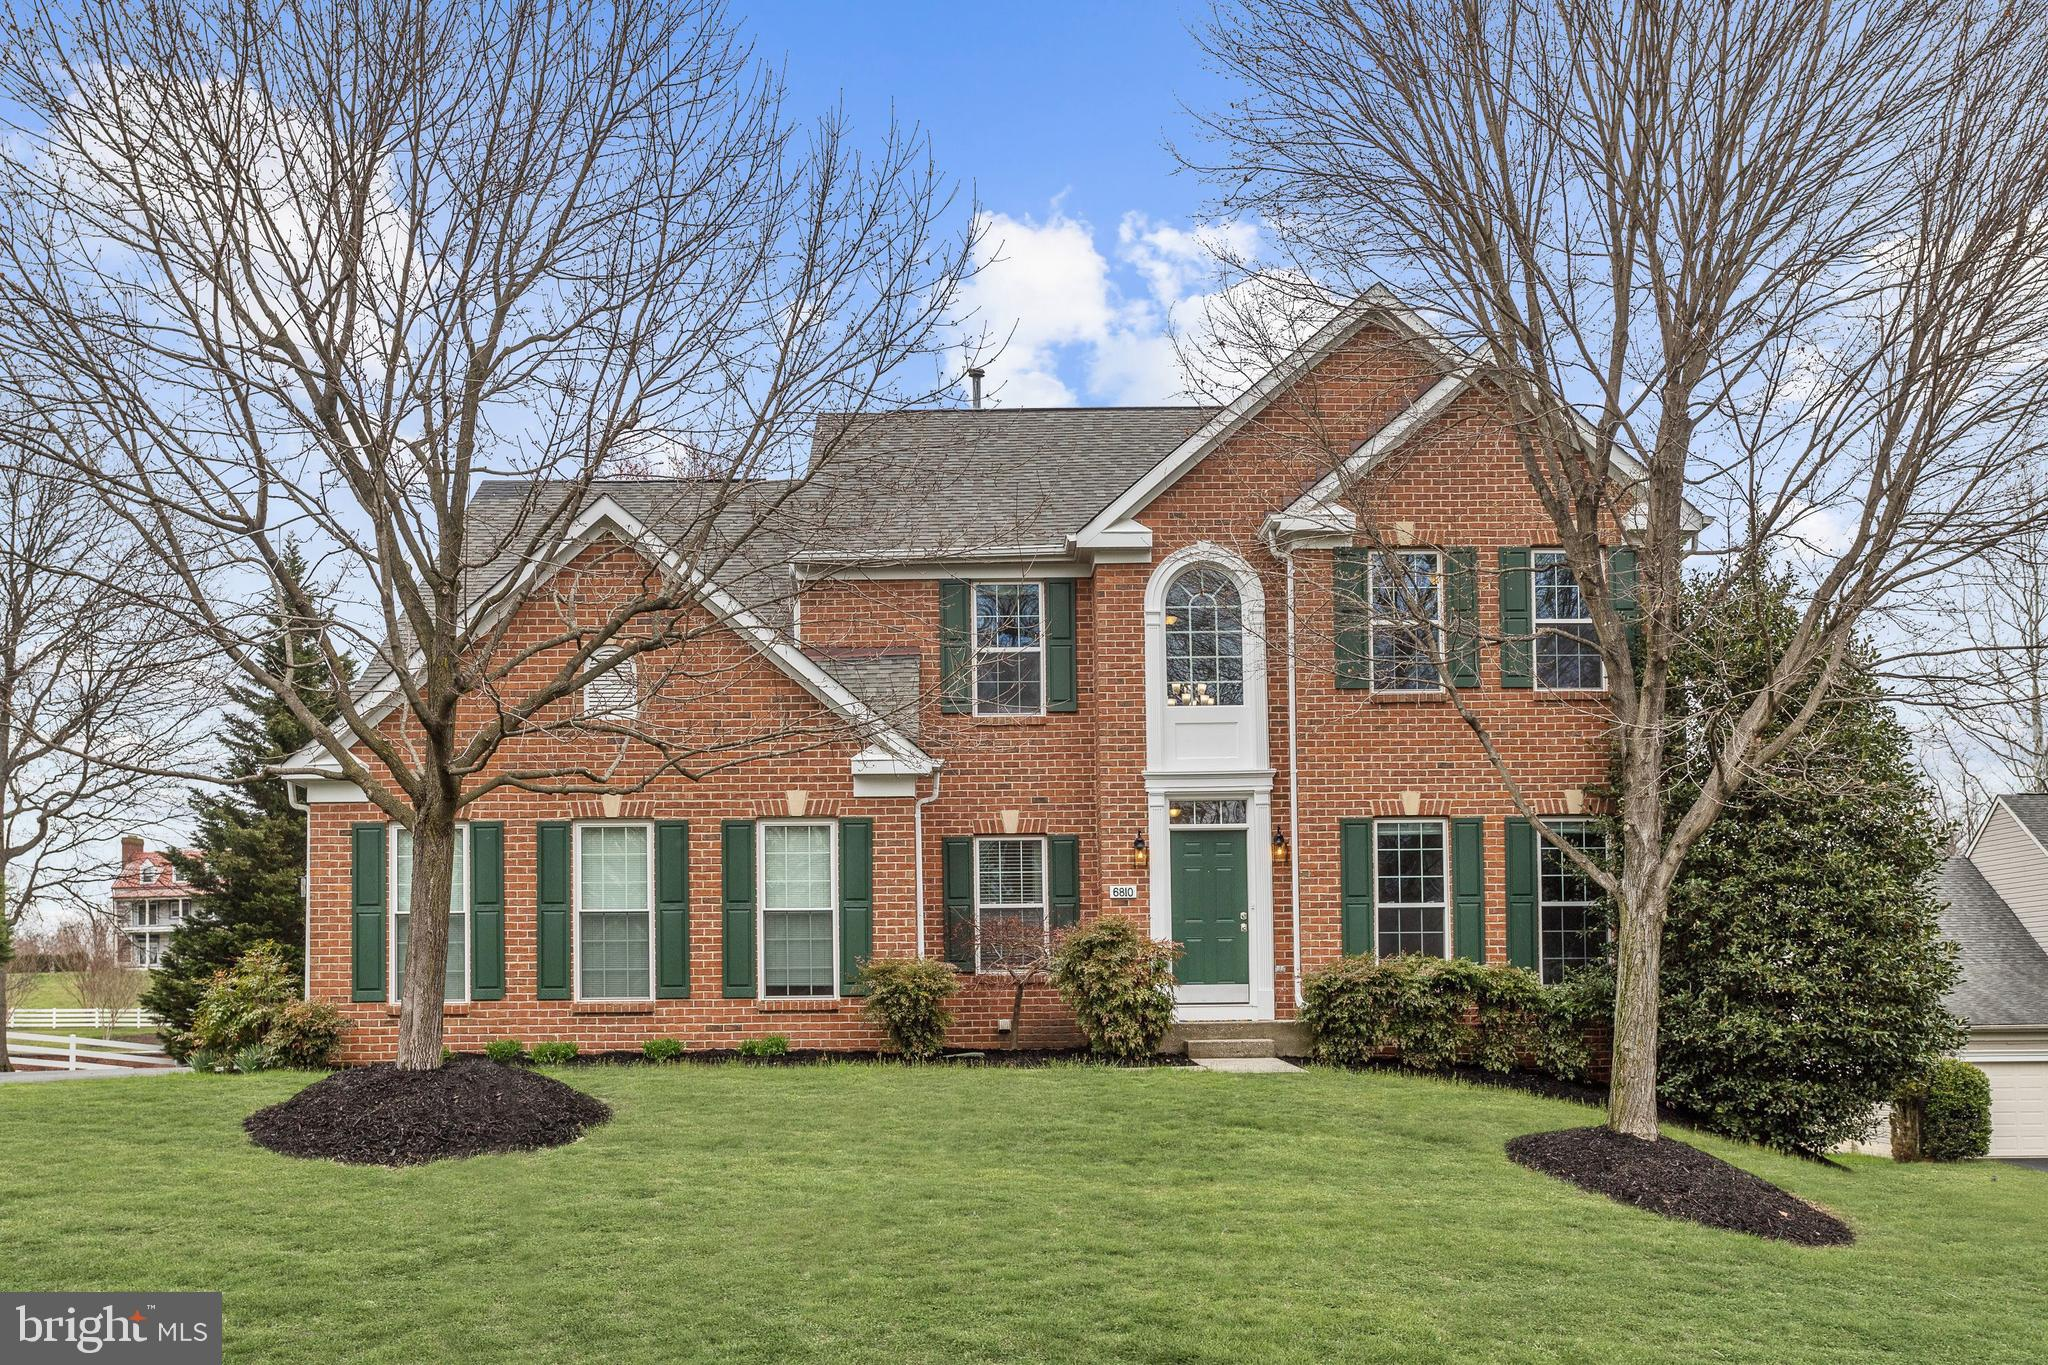 6810 ROSLYN COURT, COLUMBIA, MD 21044